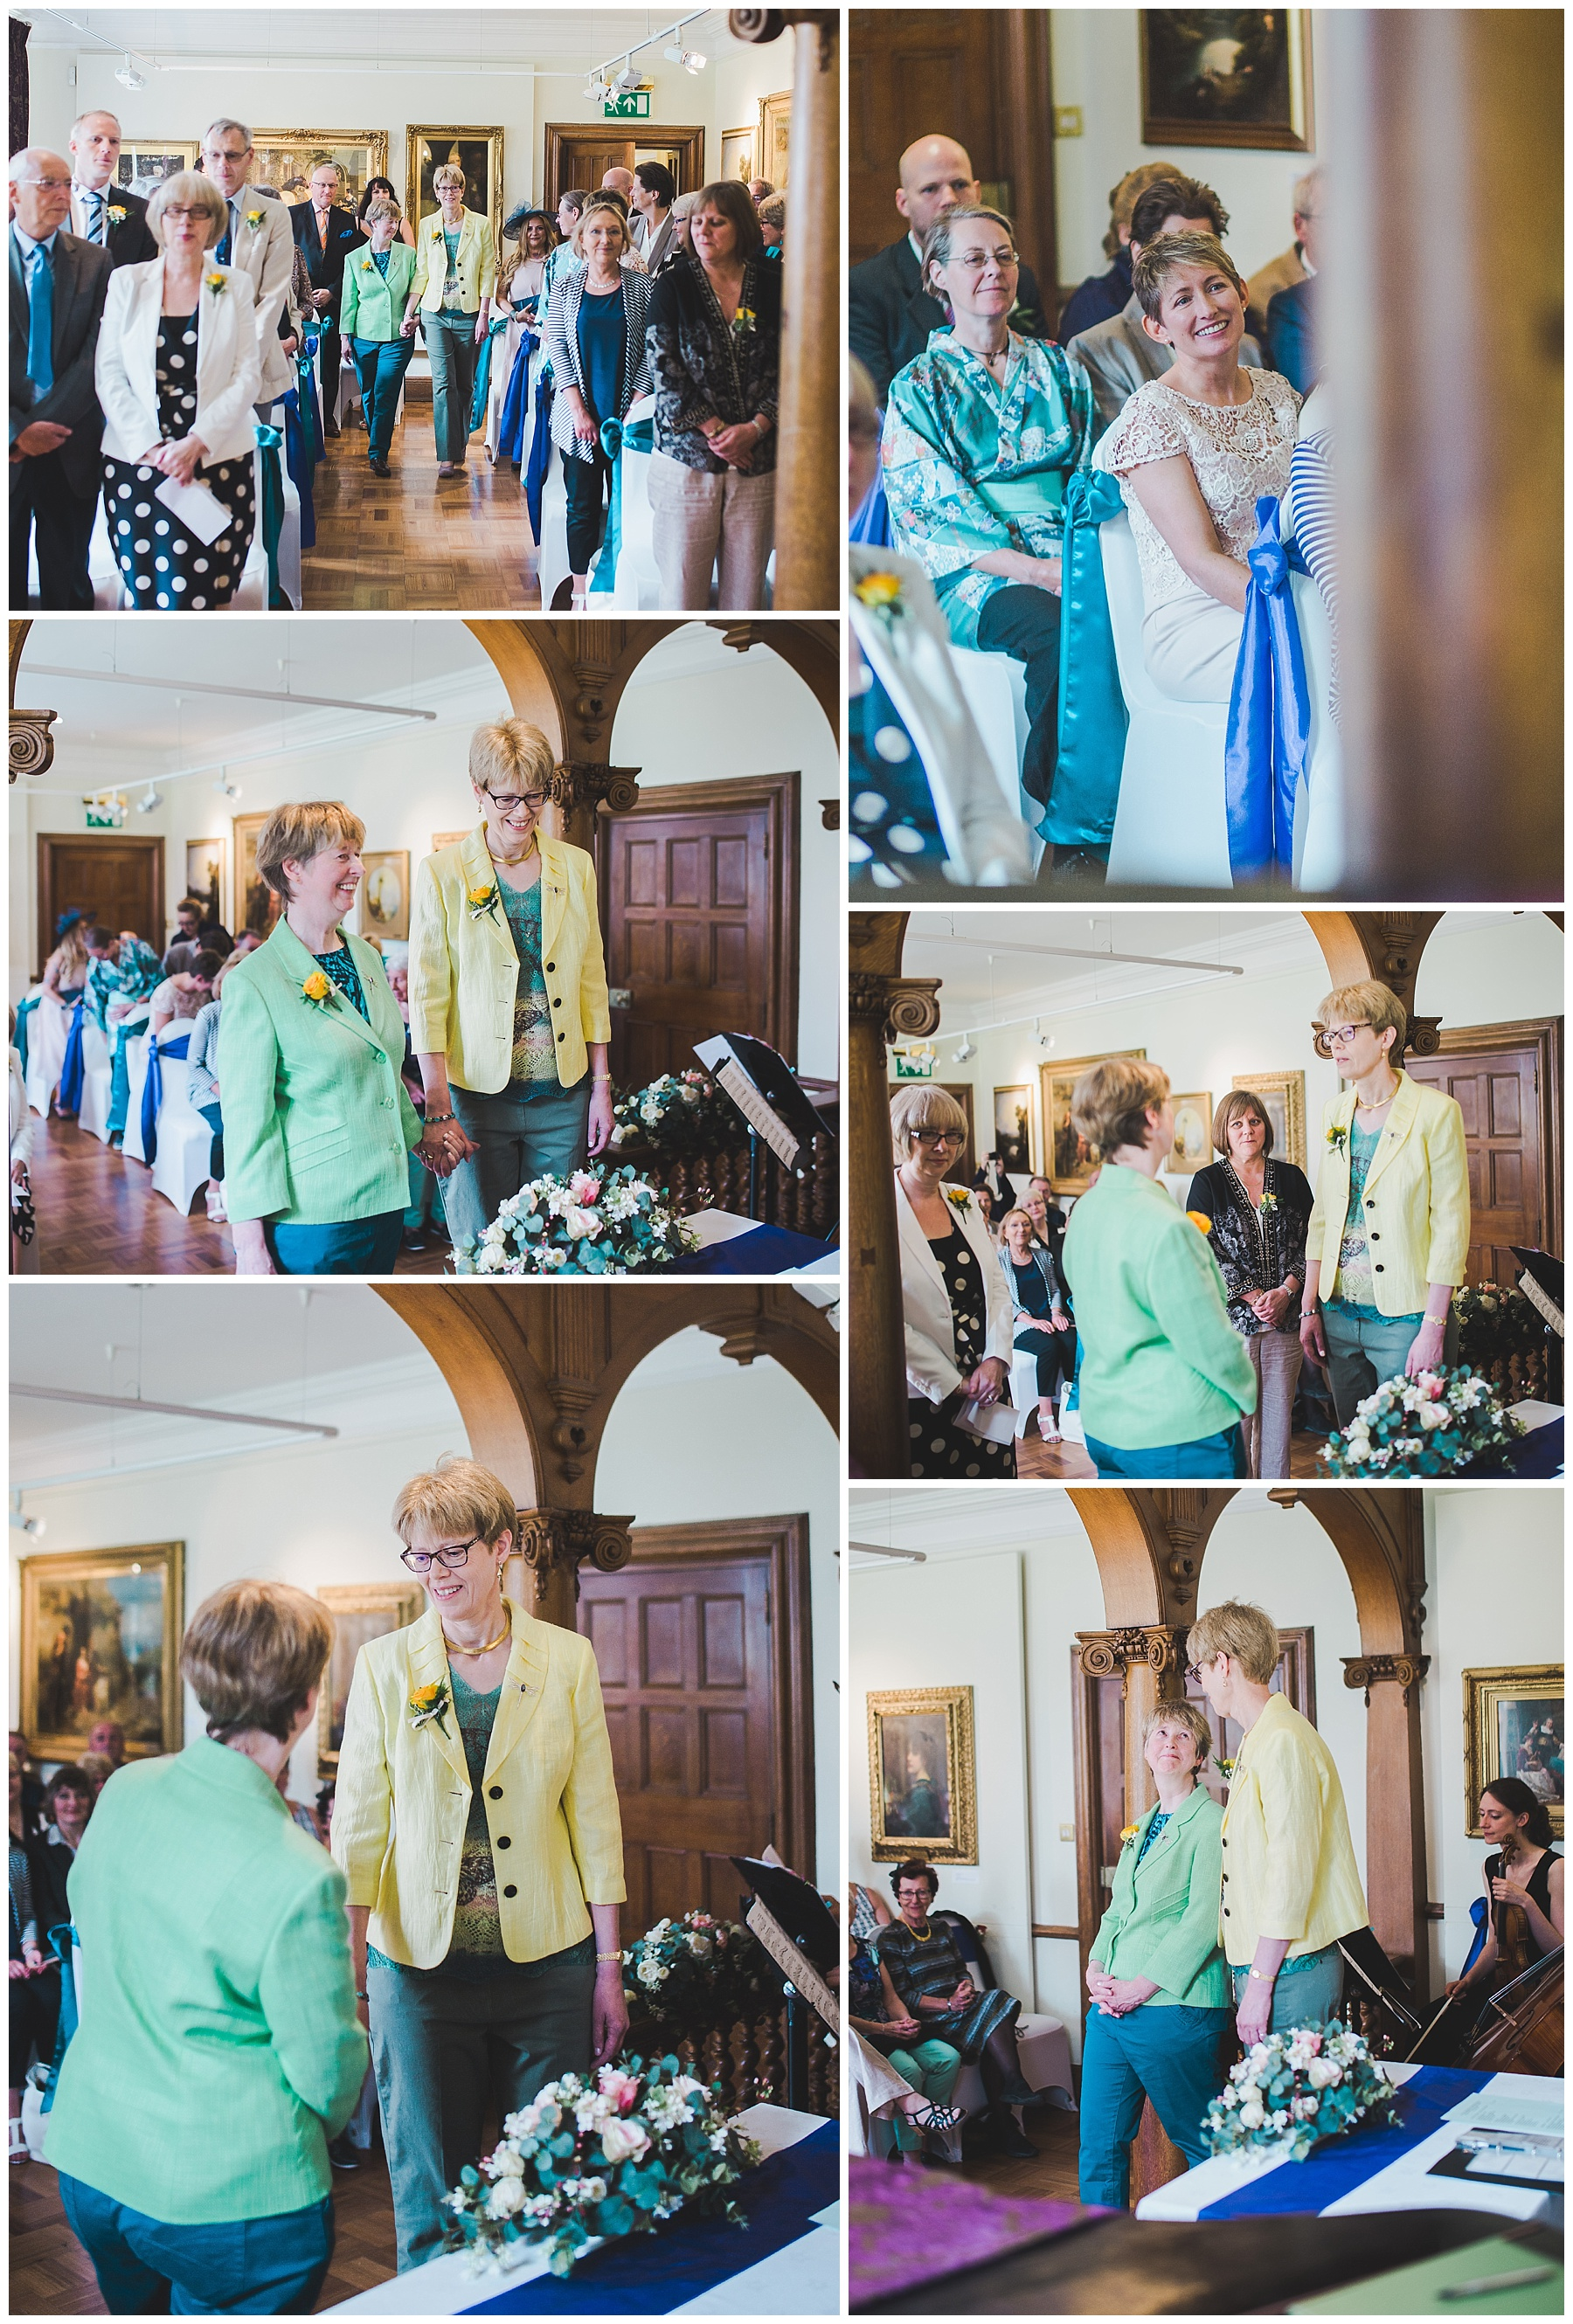 Wedding Ceremony images from Haworth Art Gallery.